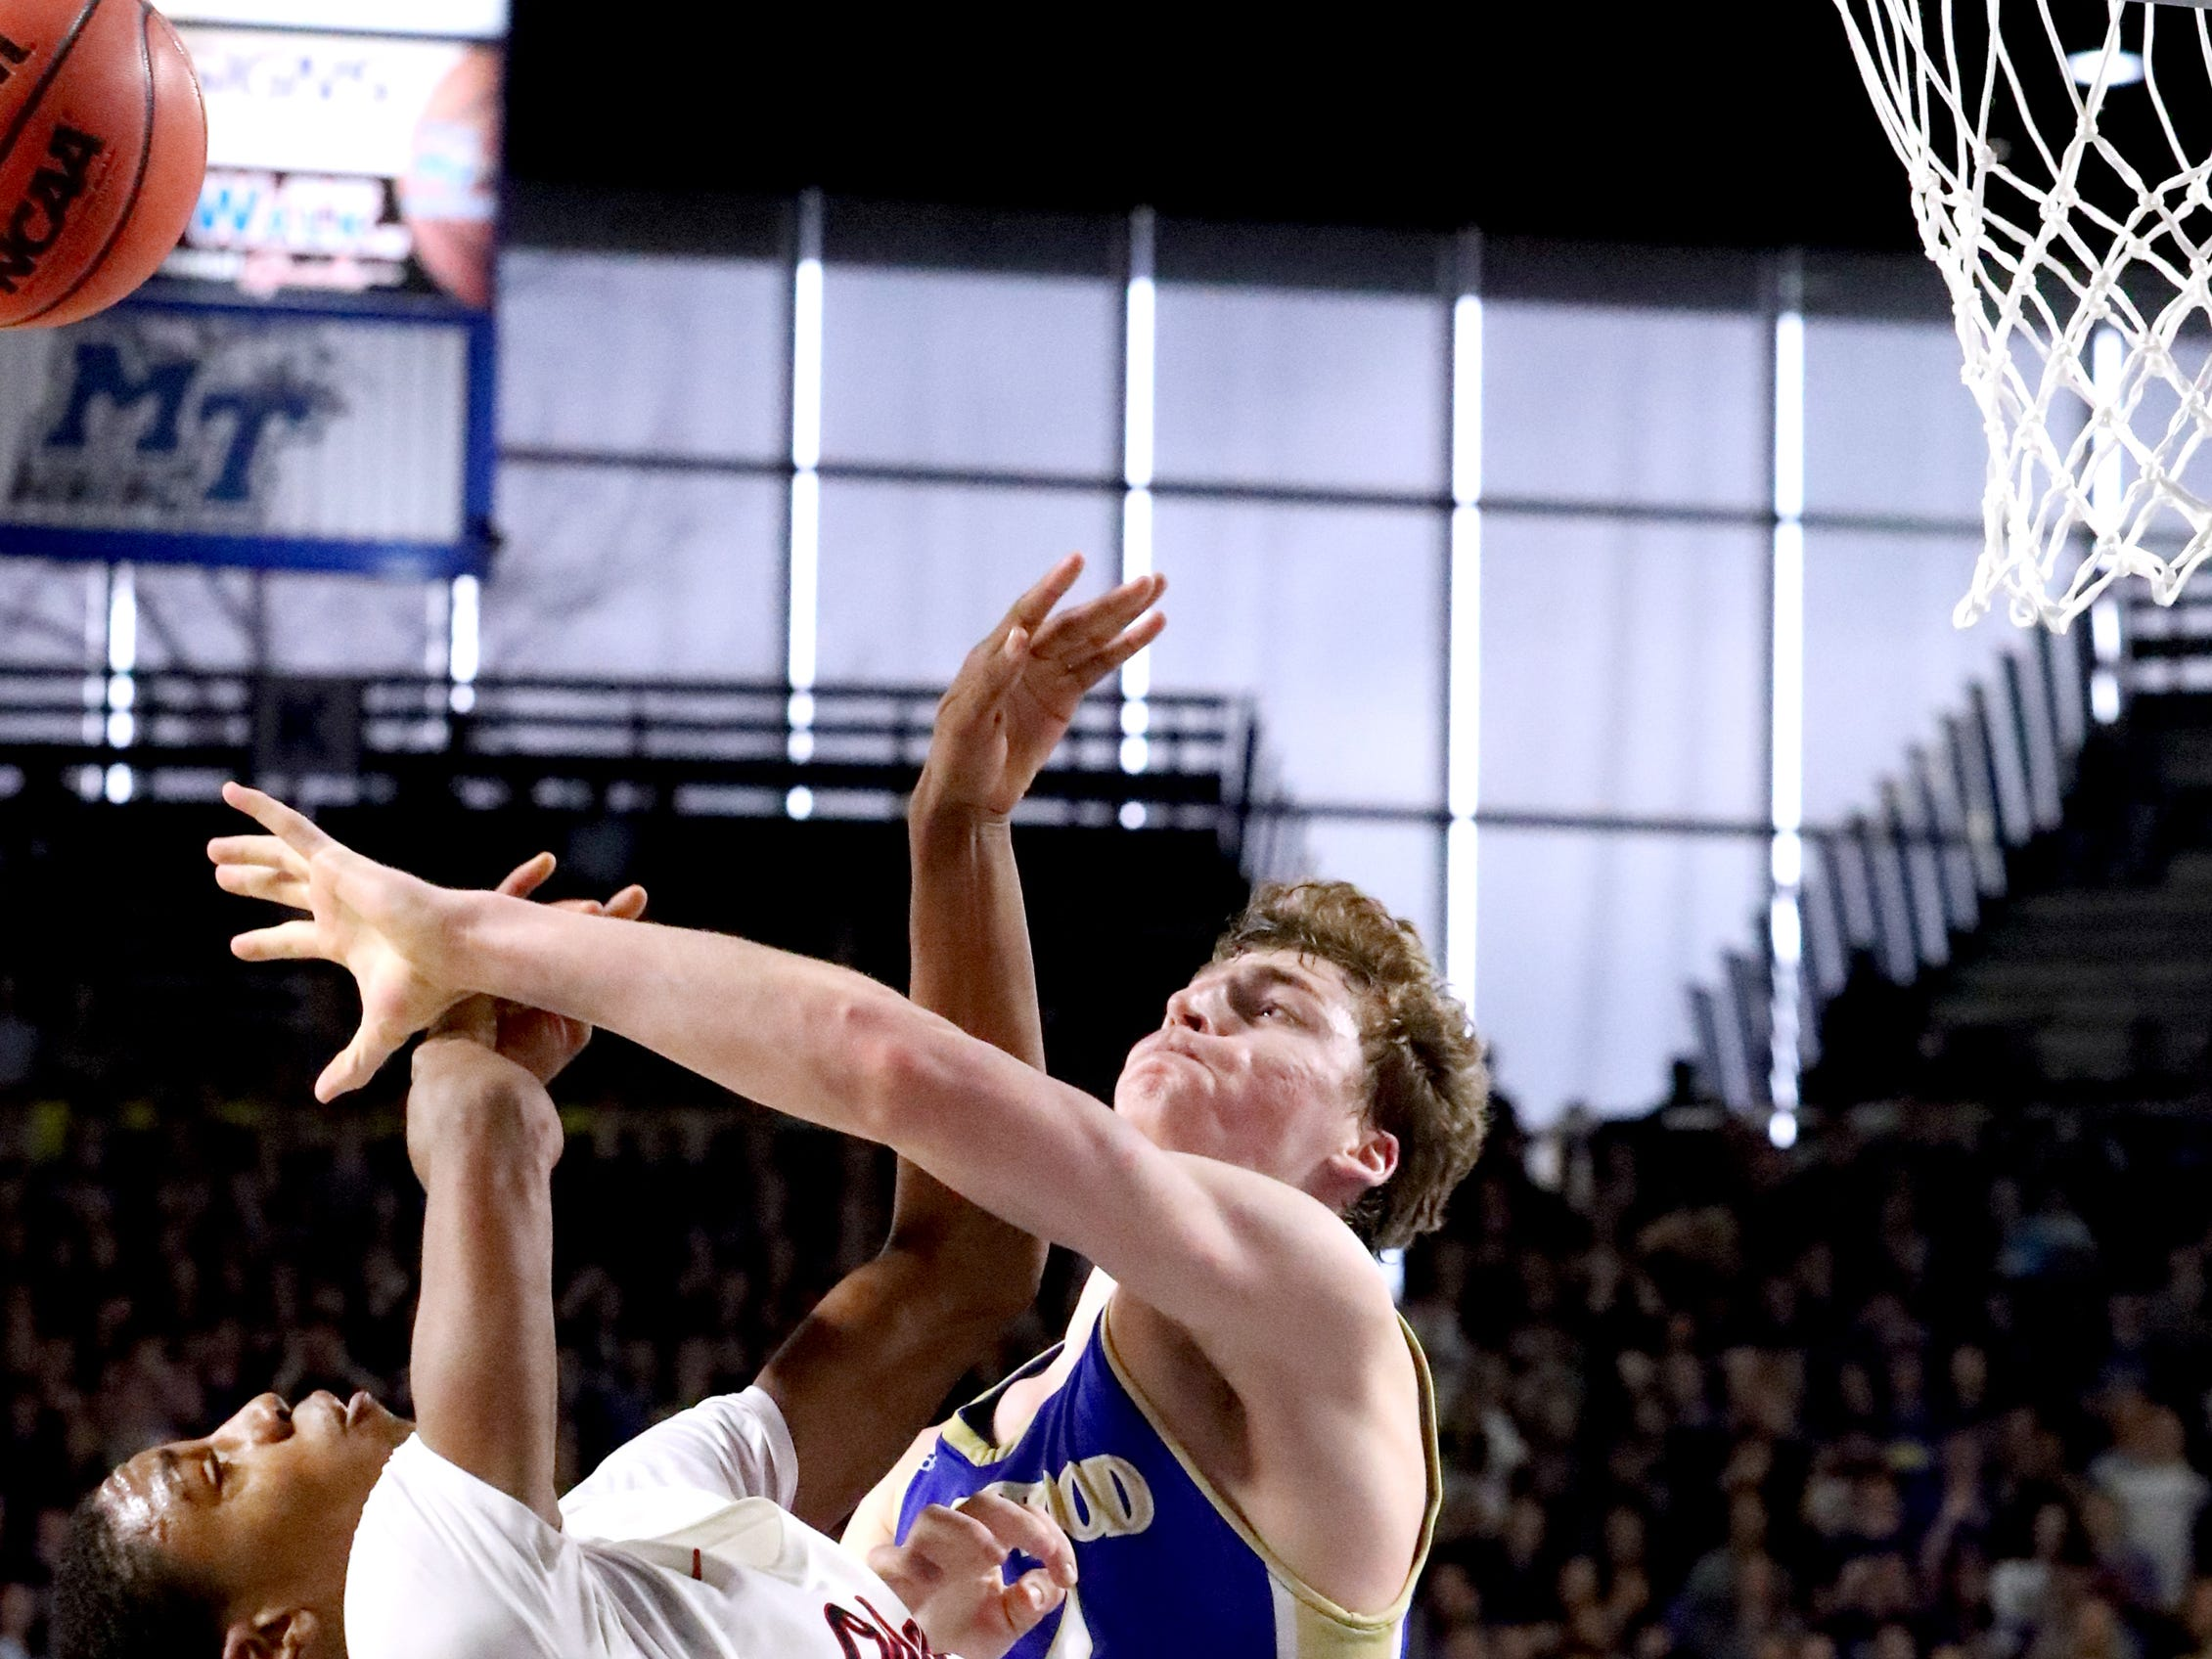 Brentwood's Ben Mills (34) fouls Oakland's Dorian Anderson (23) as he goes up for a shot during the quarterfinal round of the TSSAA Class AAA Boys State Tournament, on Thursday, March 14, 2019, at Murphy Center in Murfreesboro, Tenn.